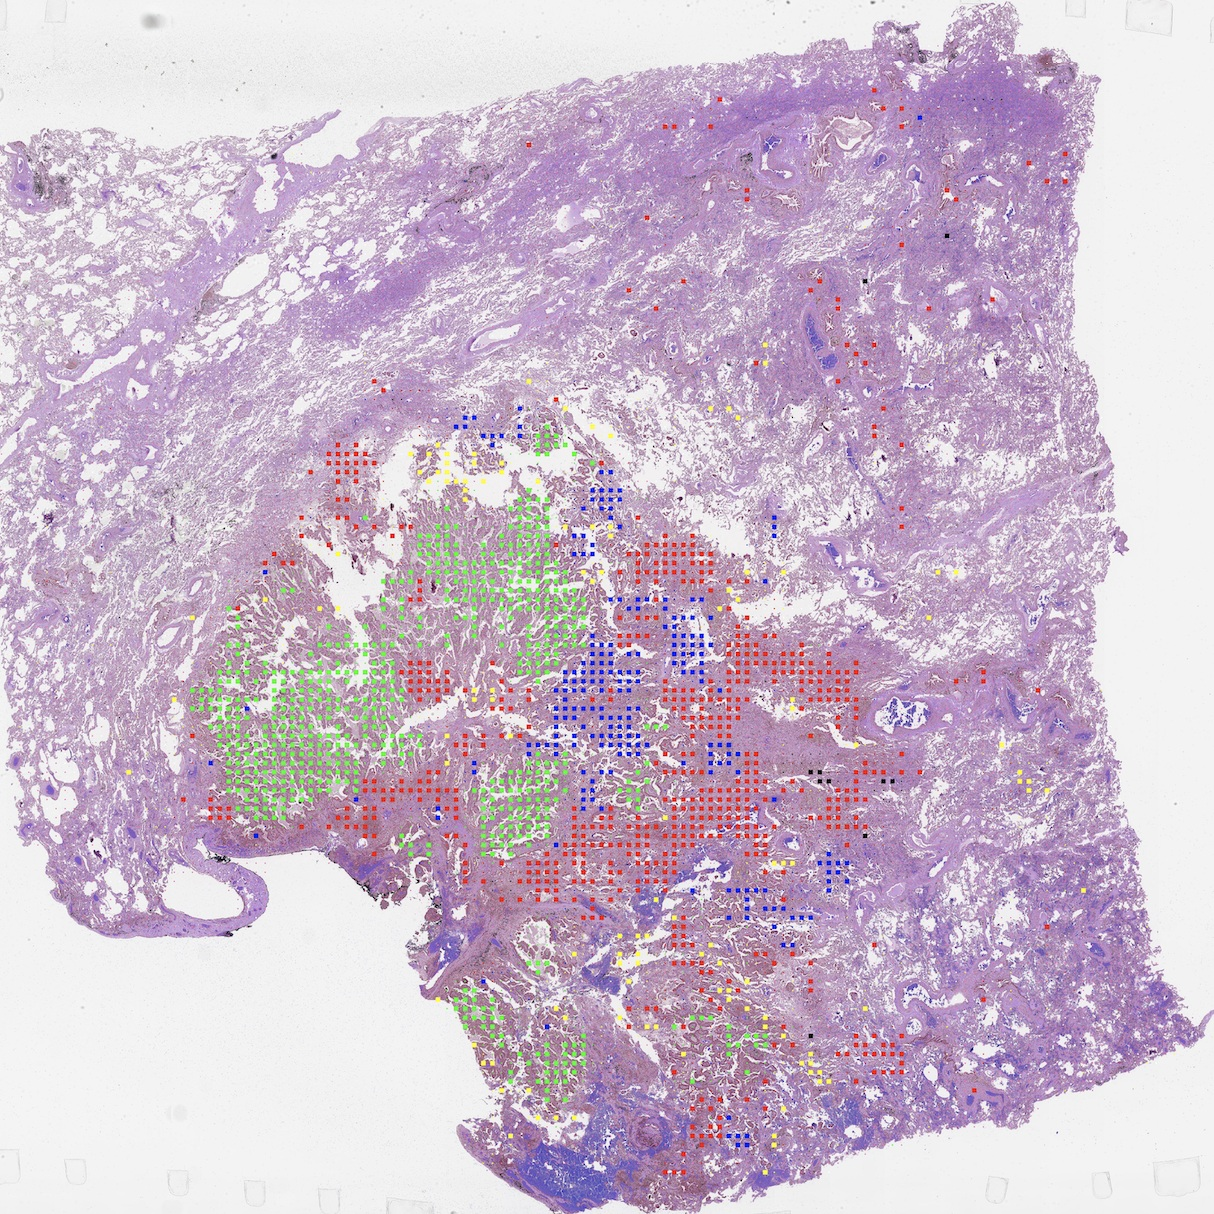 Pathologist-level Lung Cancer Classification -